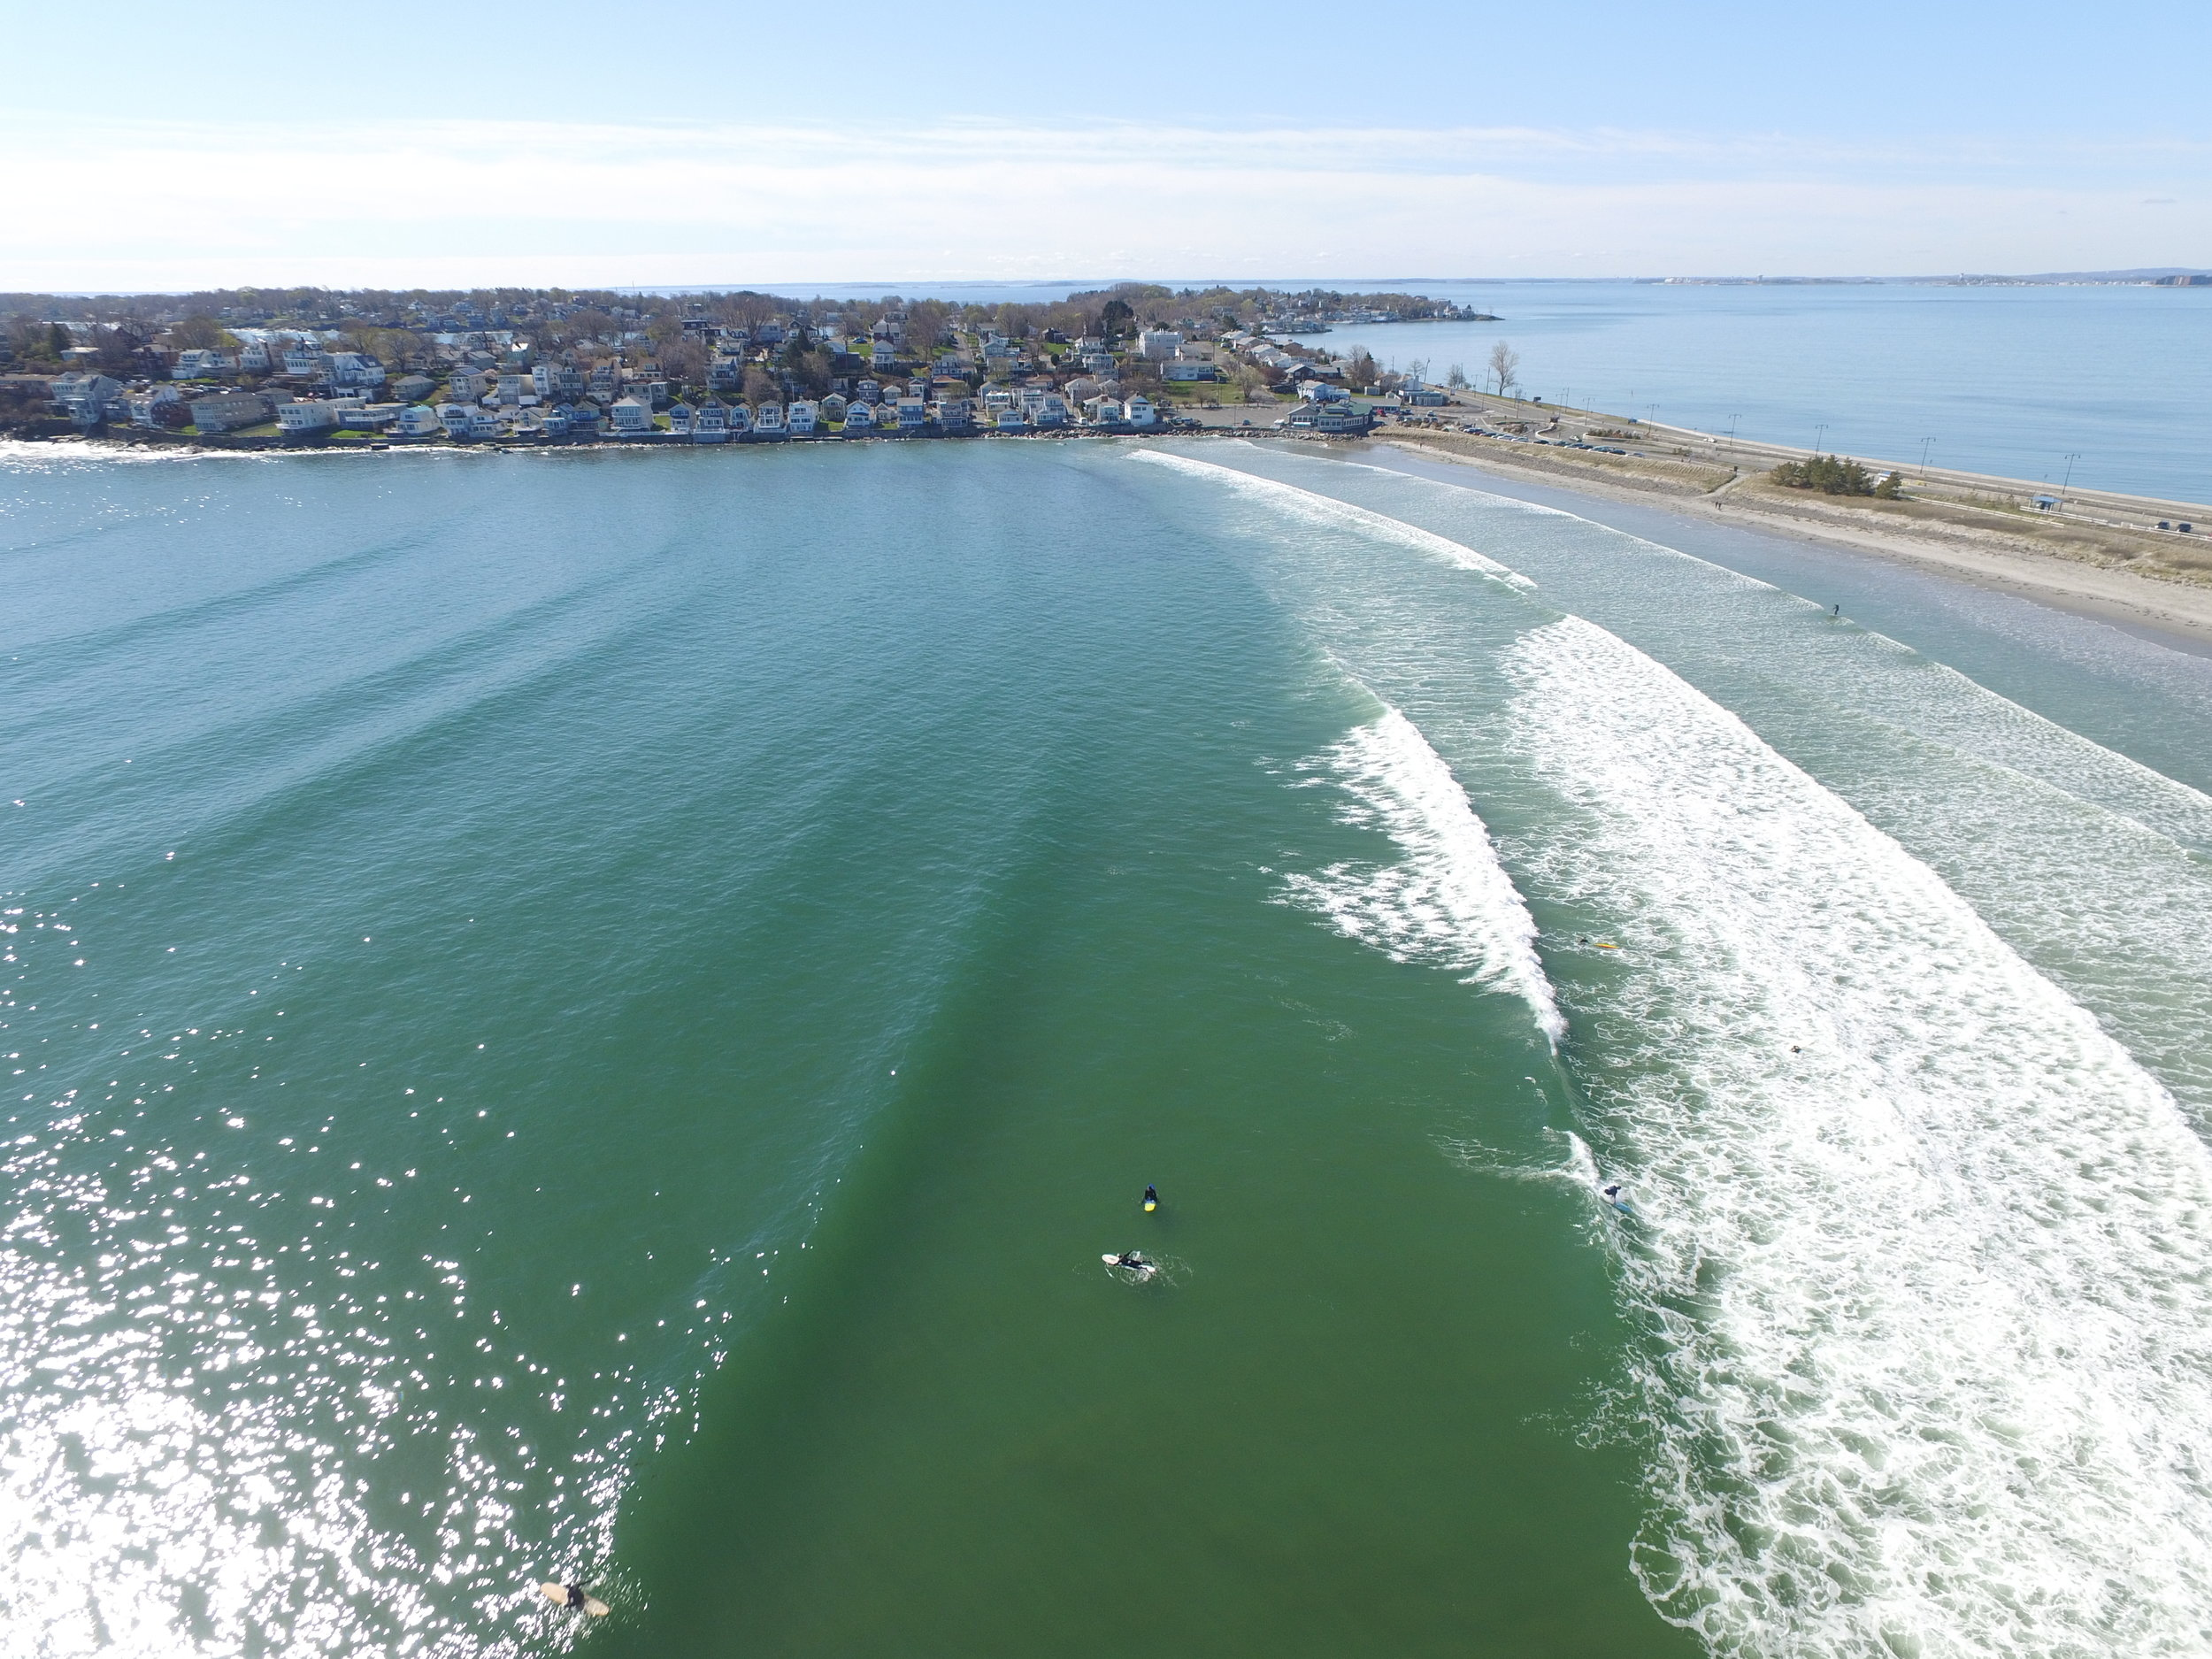 Excellent view of the wave pattern refracting around Nahant.  Aerial pic taken by Alex Debski.